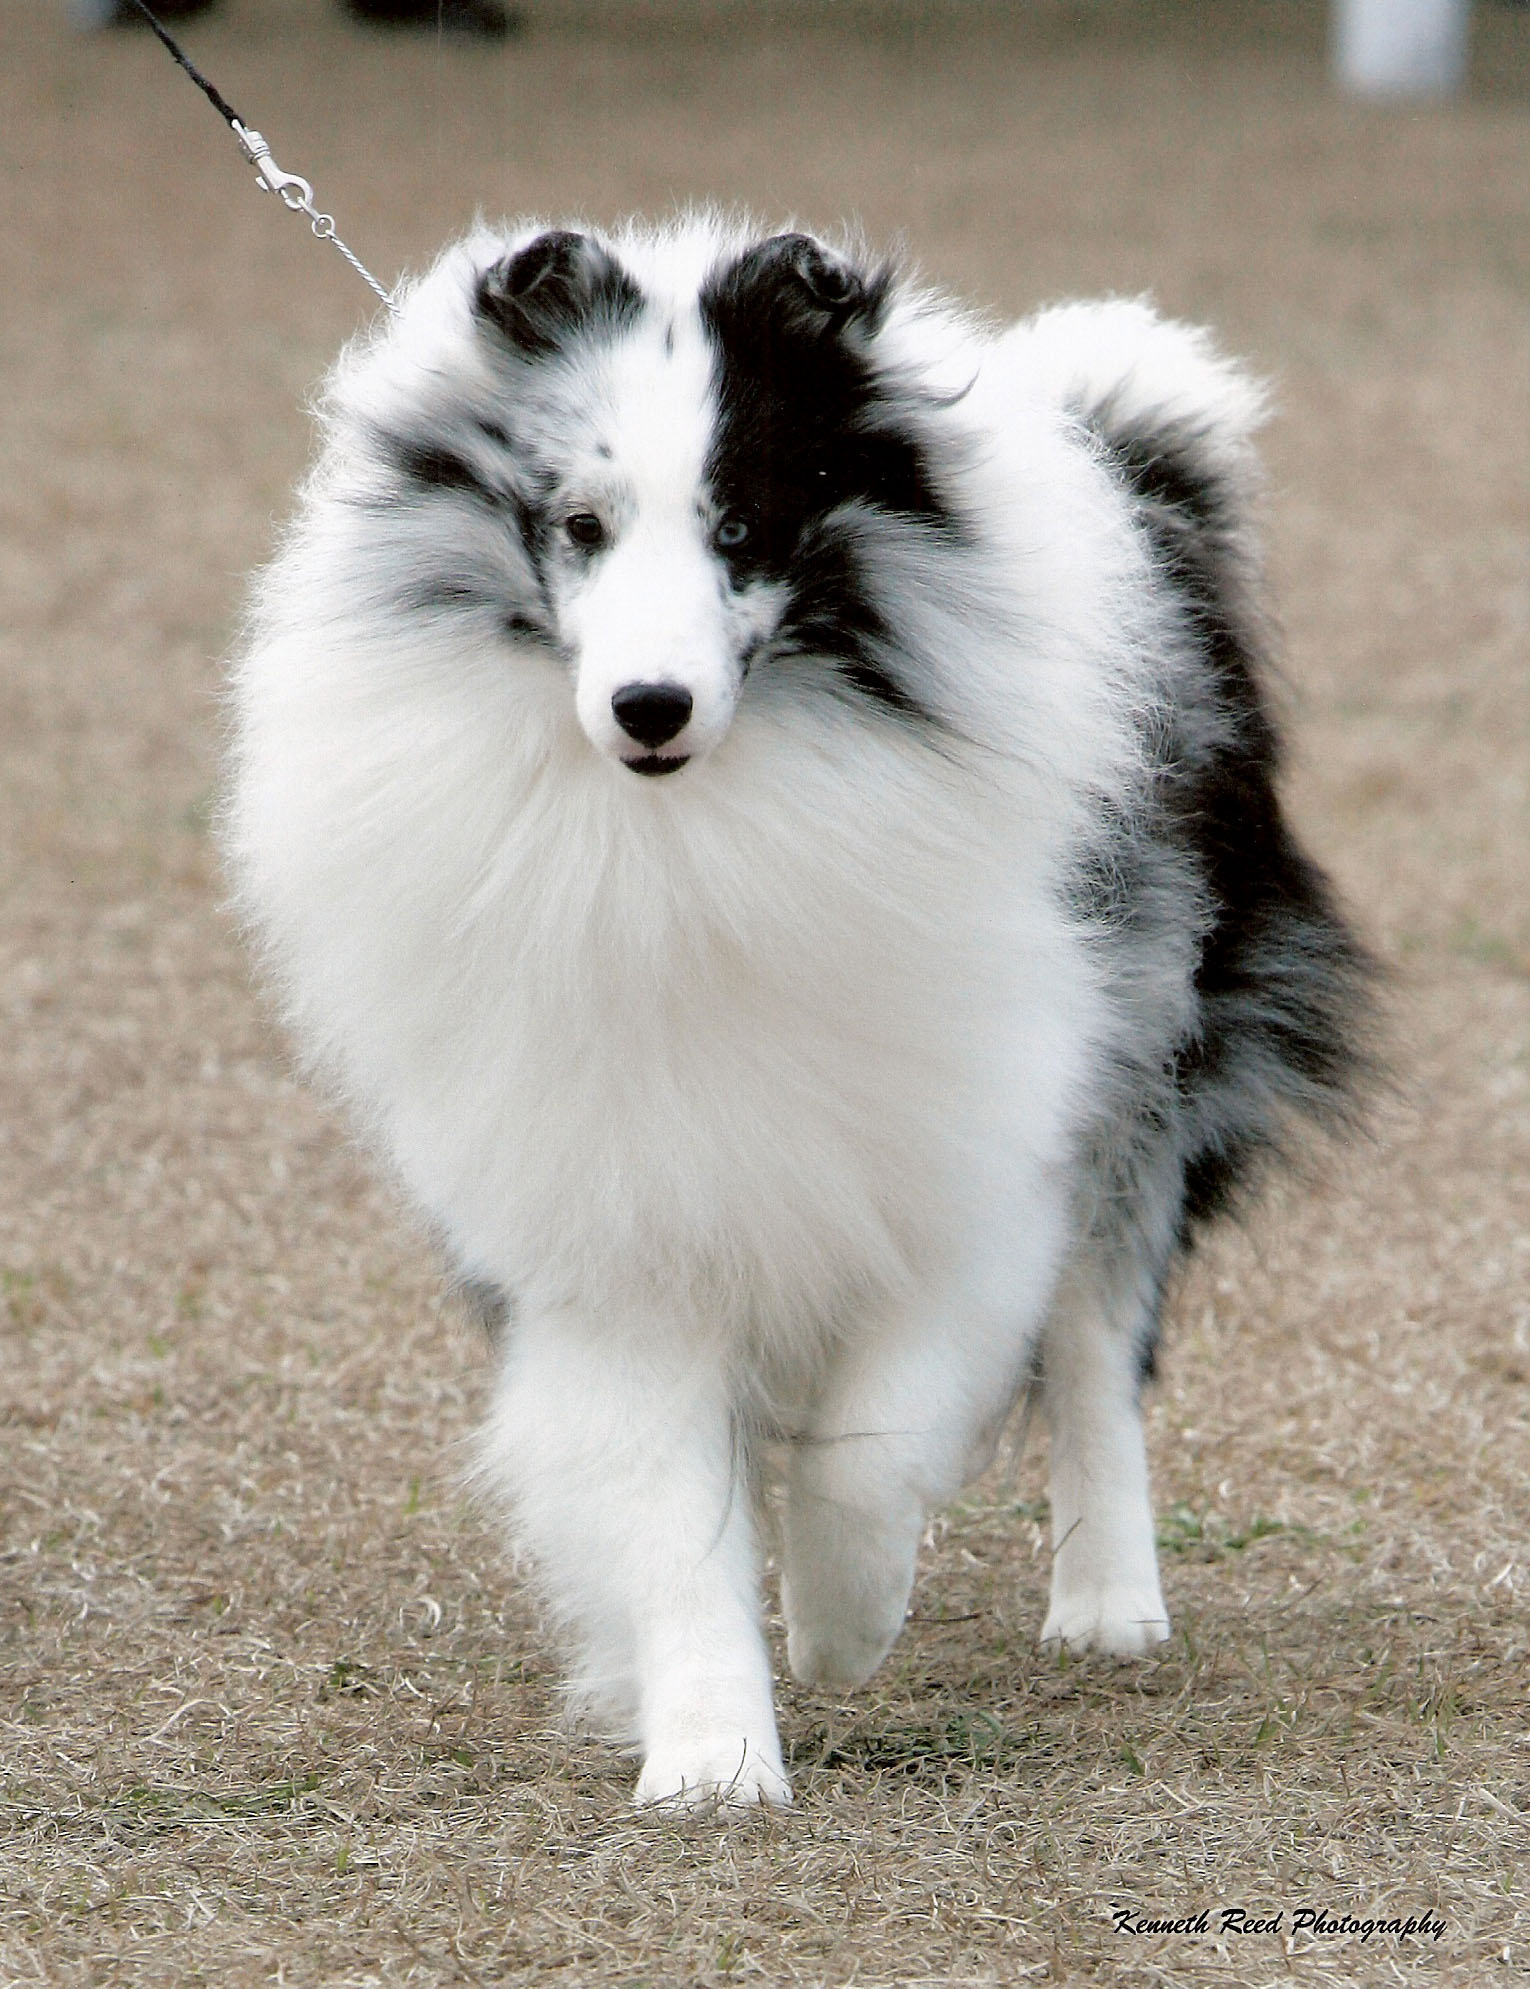 Can You Guys Tell Me All You Know About Shetland Sheepdog Shelties